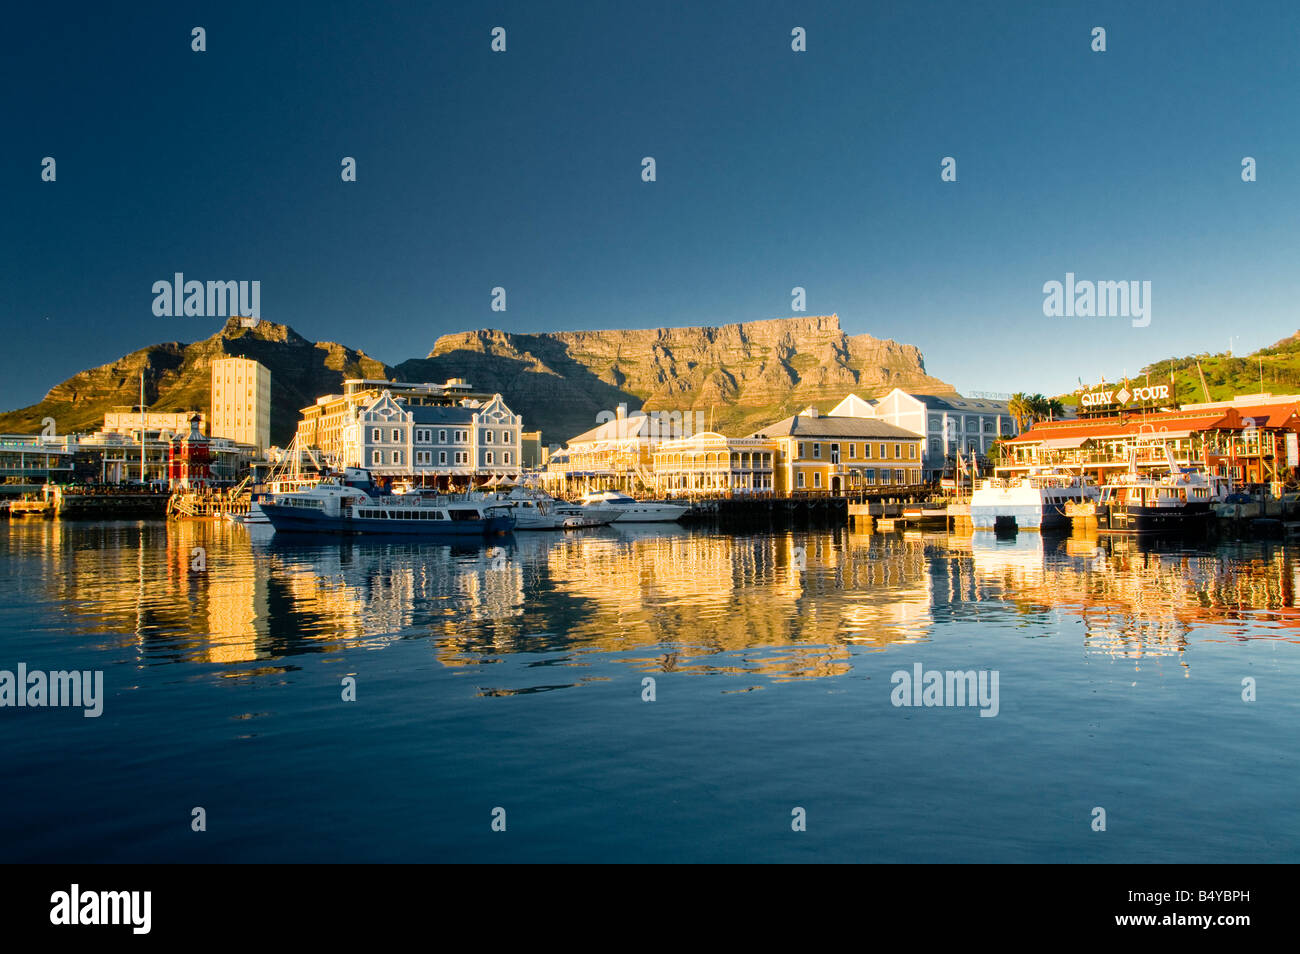 Waterfront, Table Mountain, Cape Town, Western Cape, South Africa - Stock Image